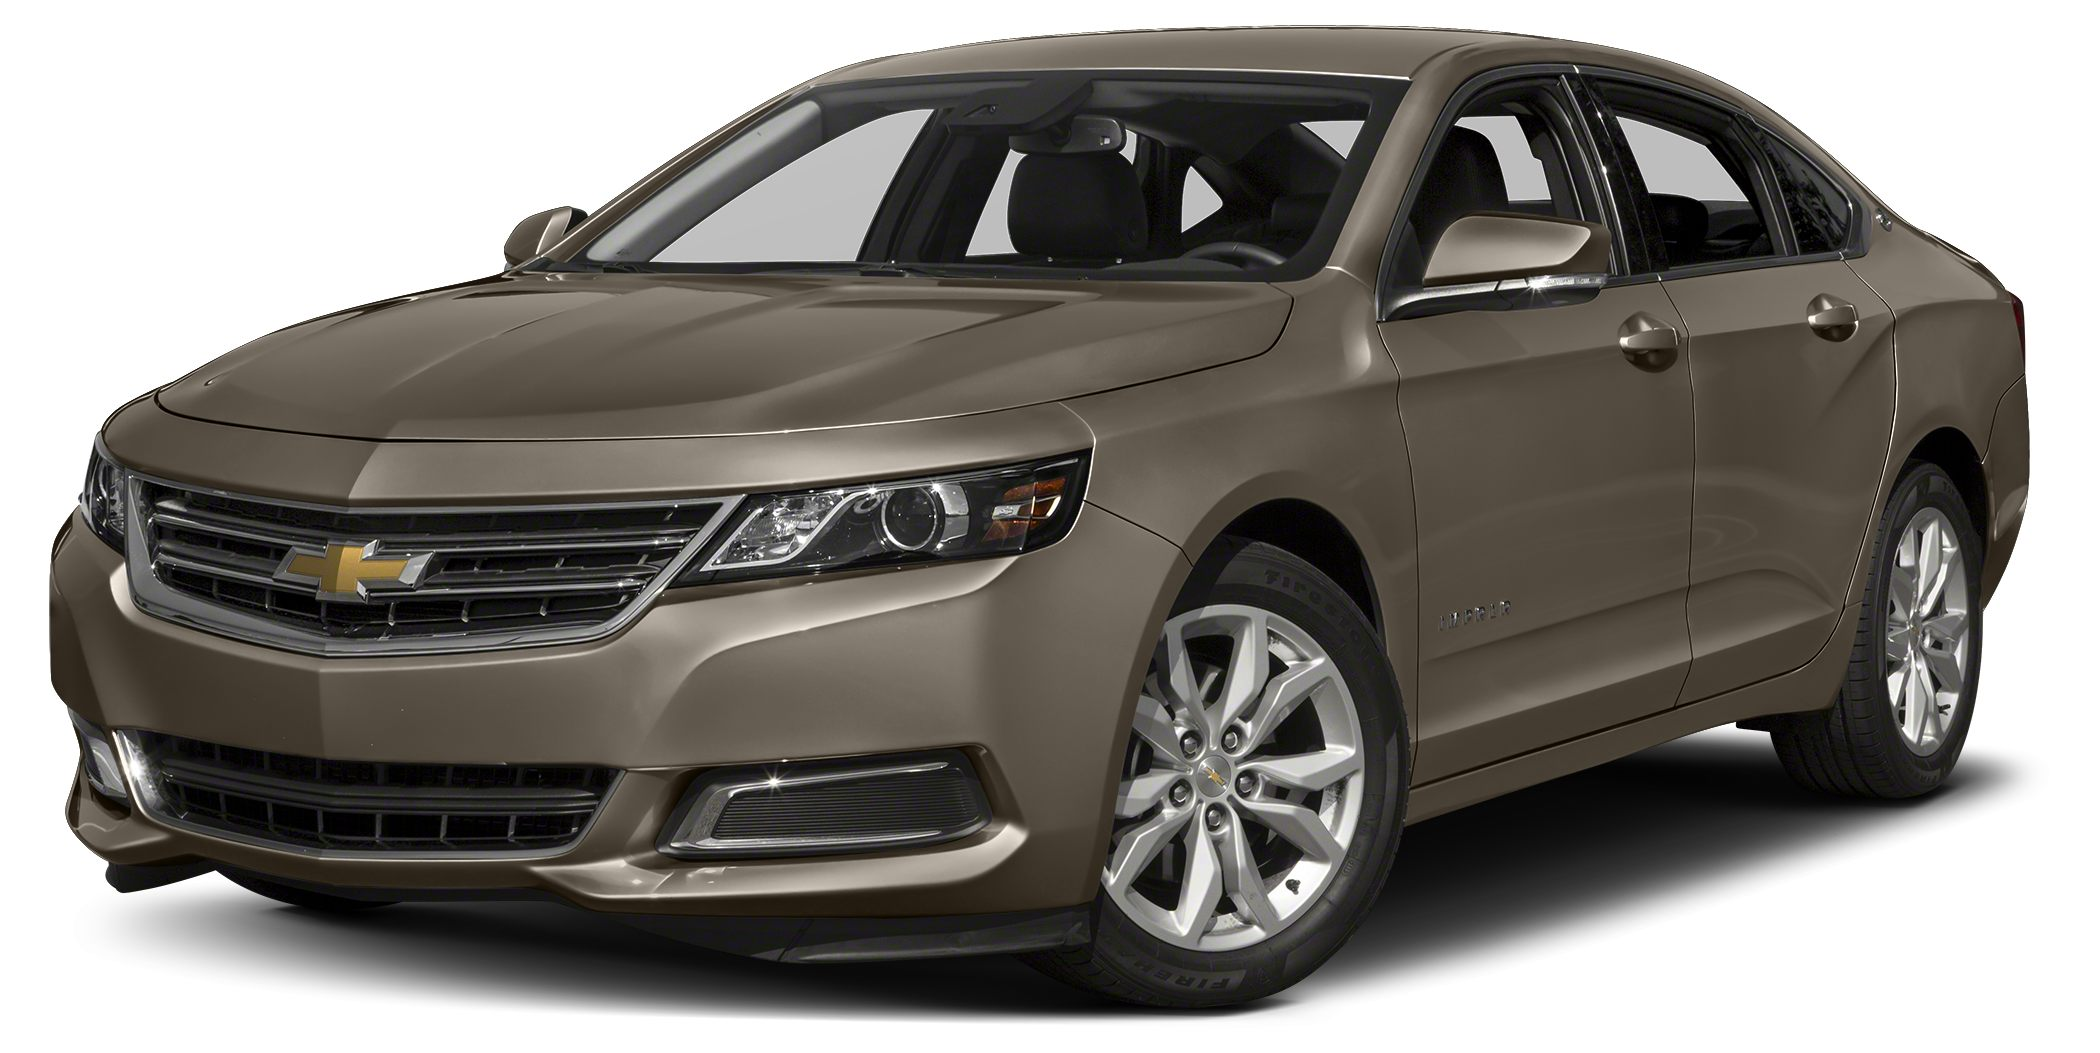 2017 chevy impala lt owners manual